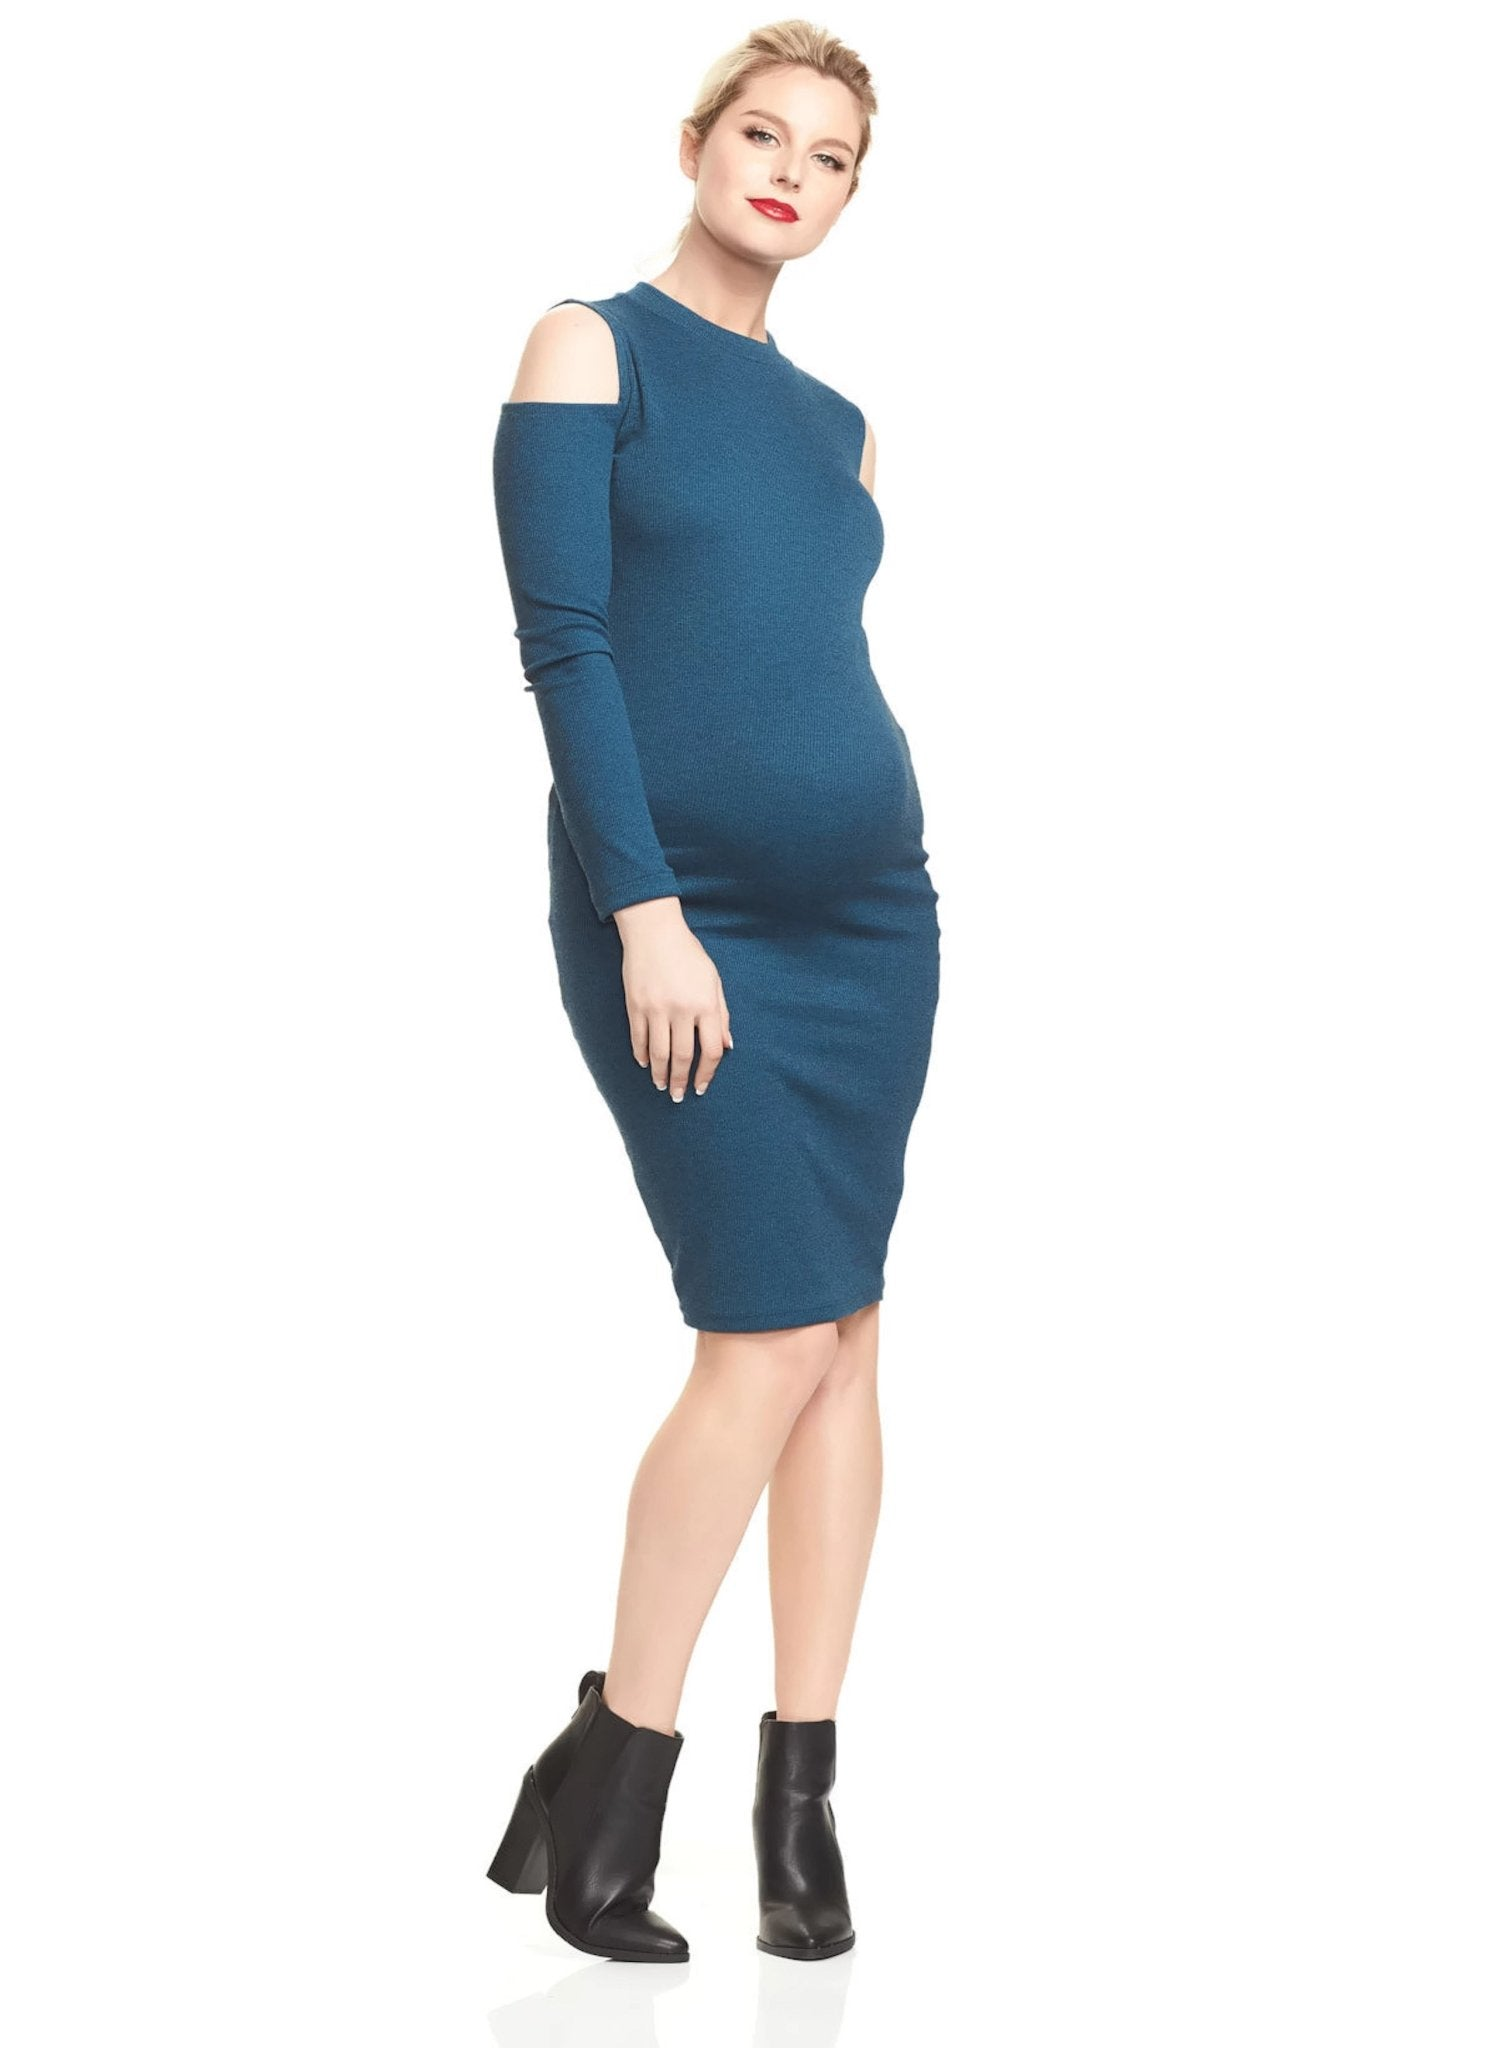 Casima Shoulder Maternity Dress - Mums and Bumps